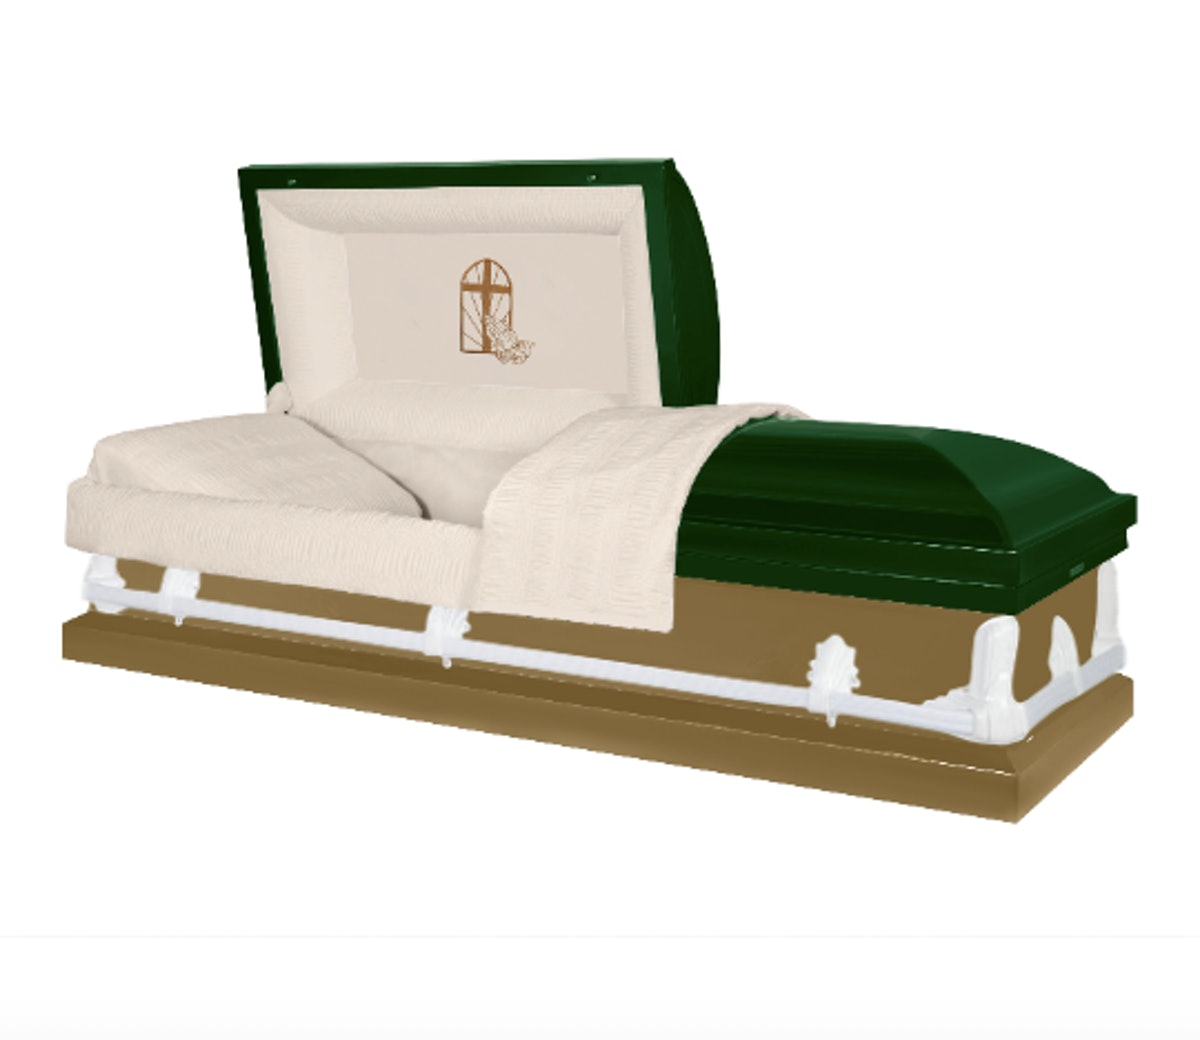 Green and brown color-blocked coffin with with white hardware and a prayer emoji in a church window ...